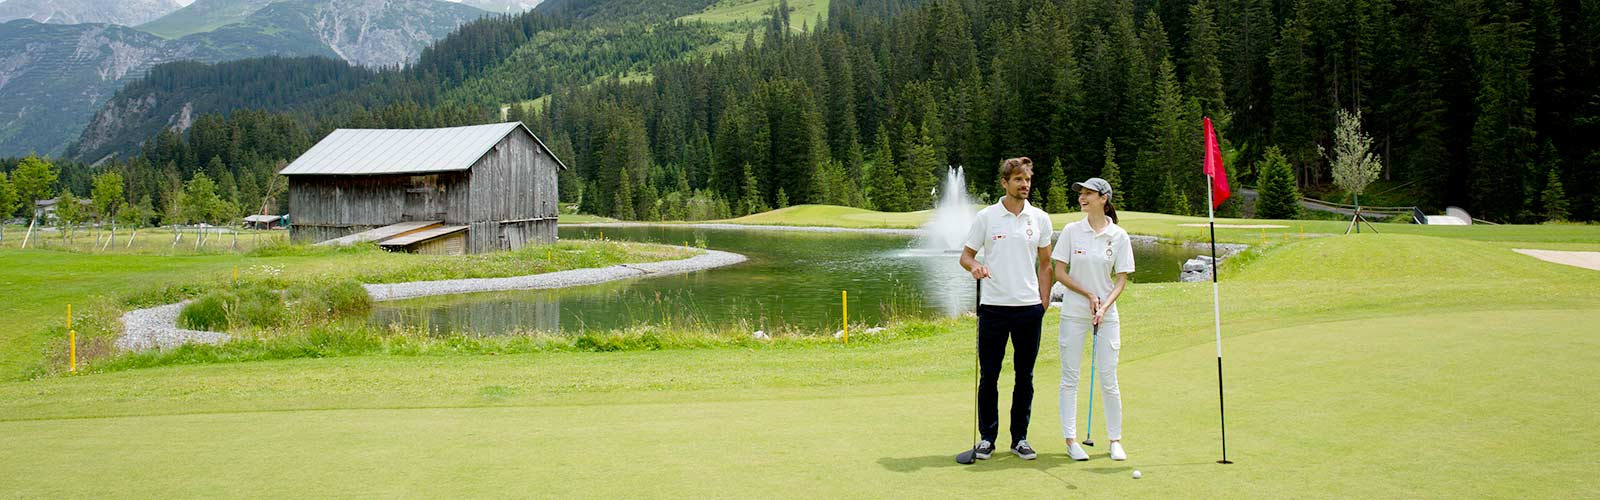 Play golf at Lech am Arlberg